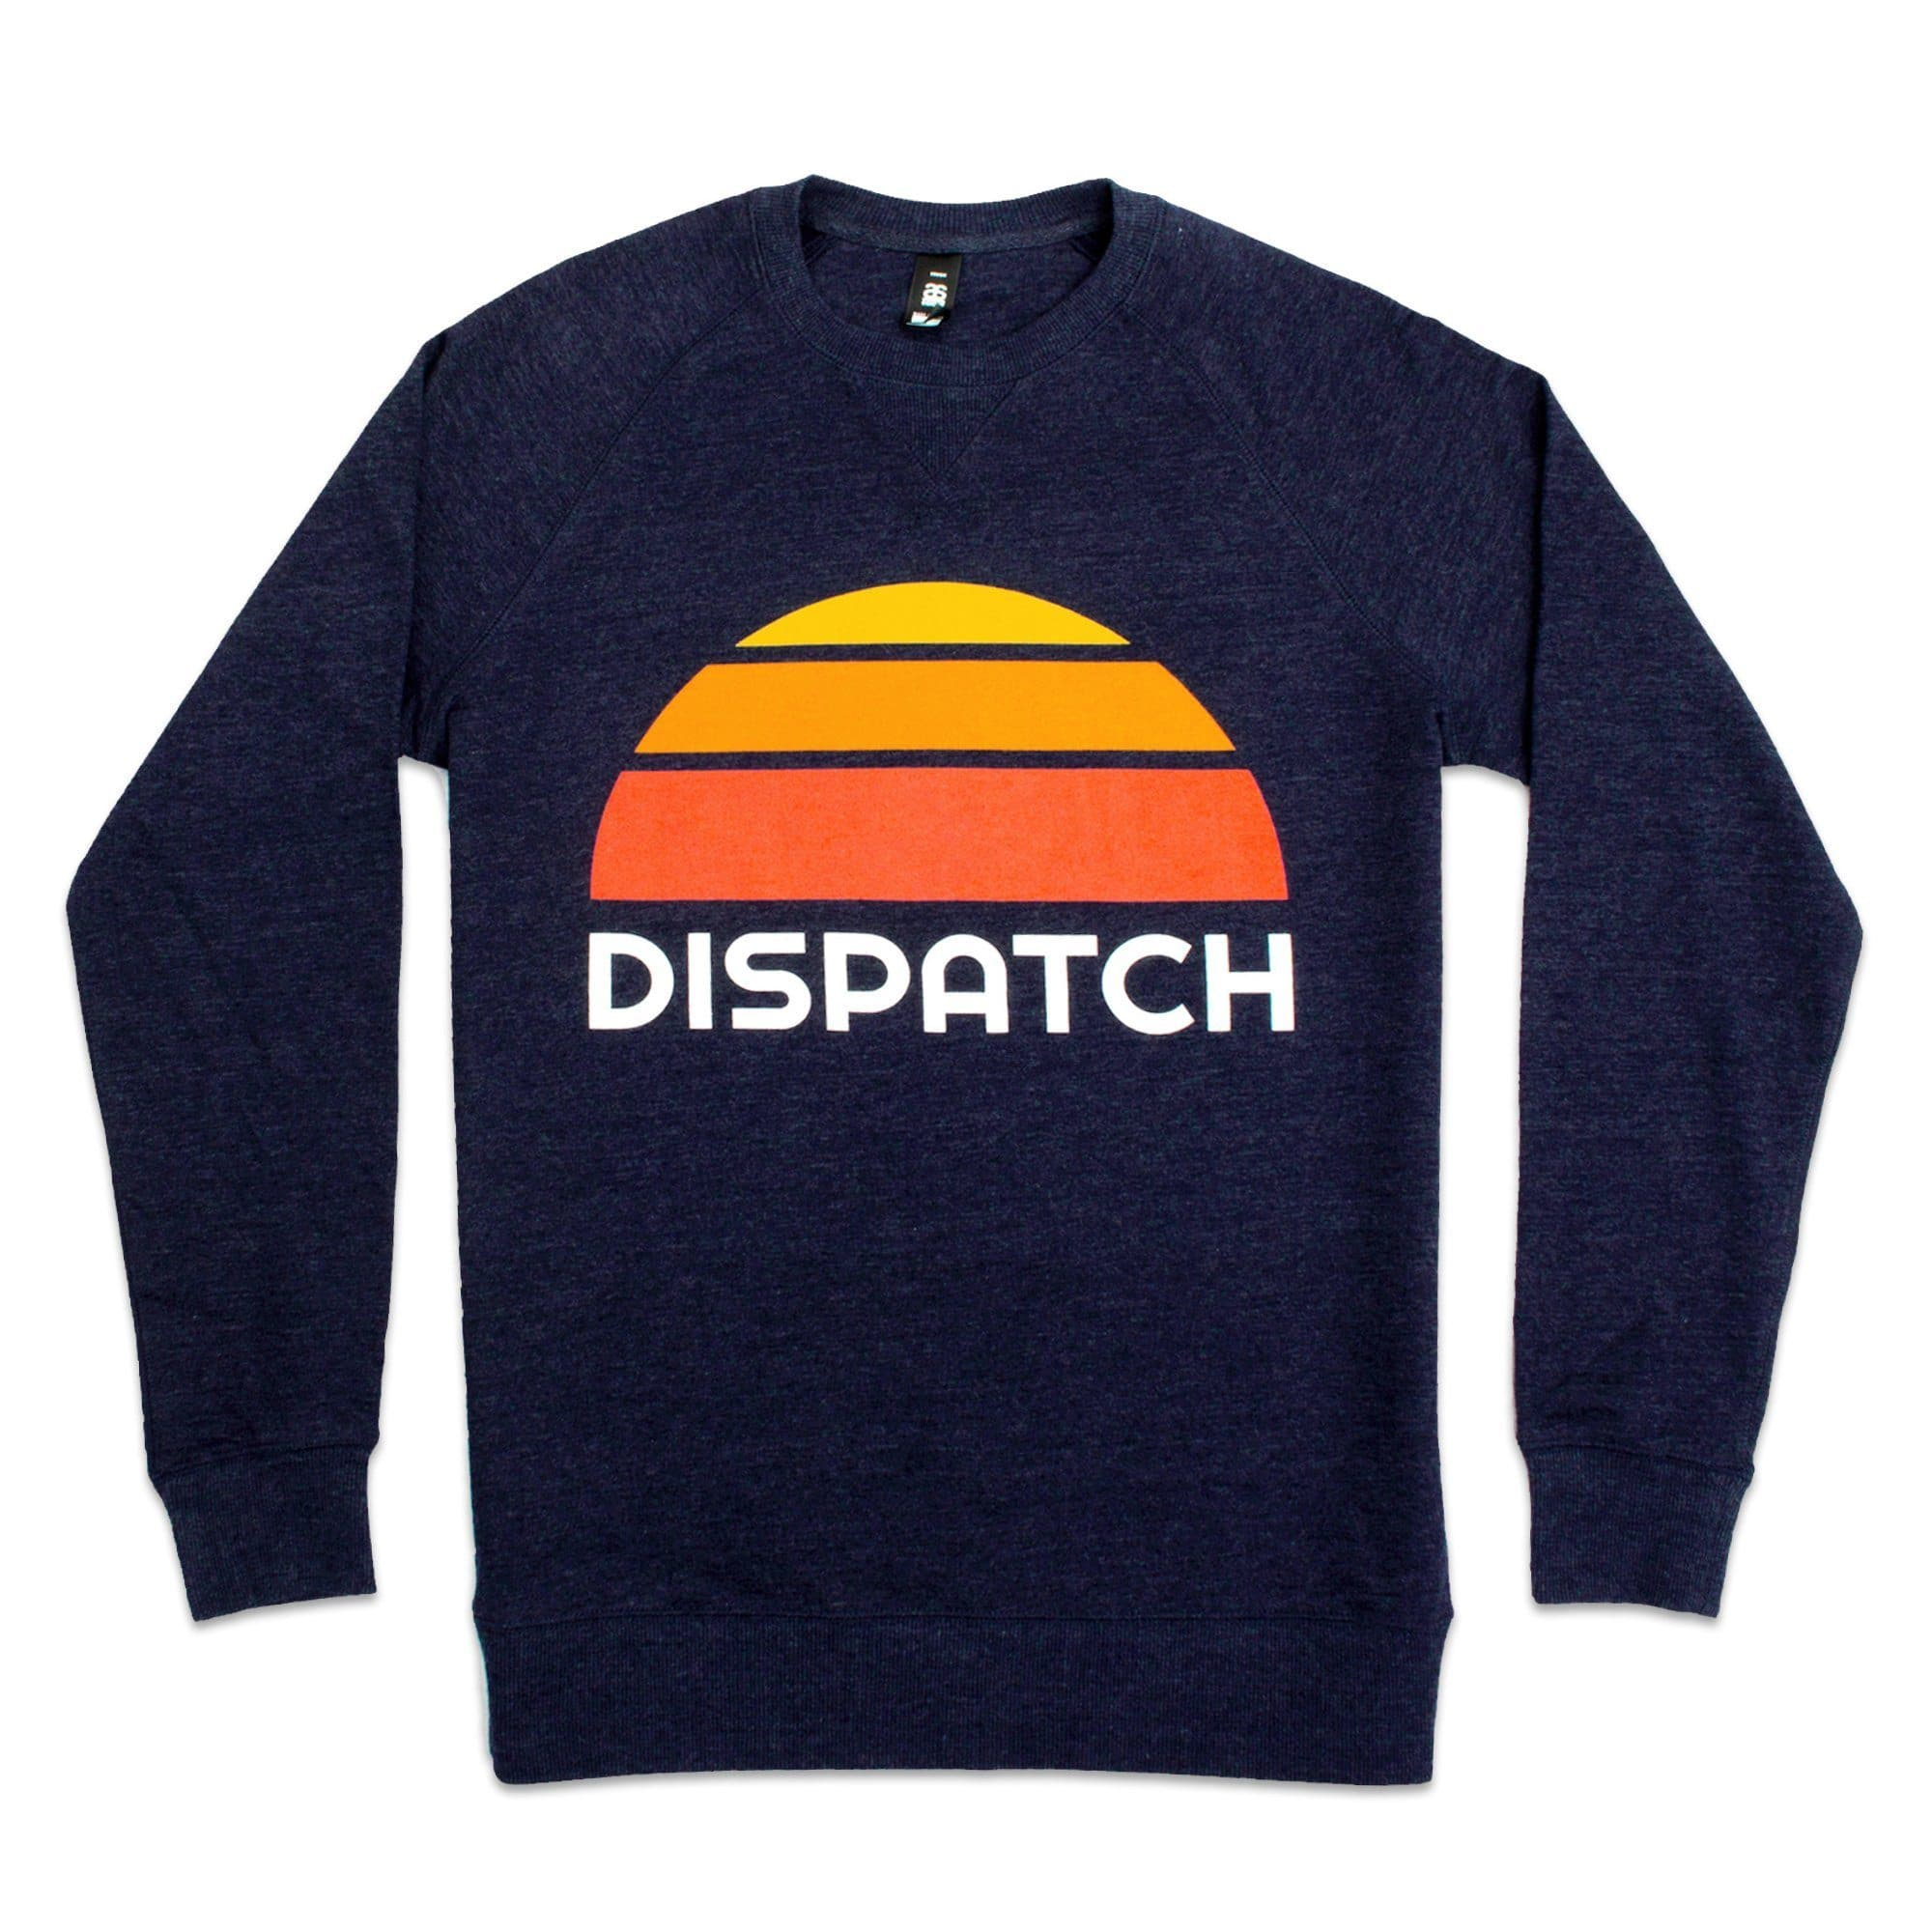 'Sunset' Crewneck Sweater